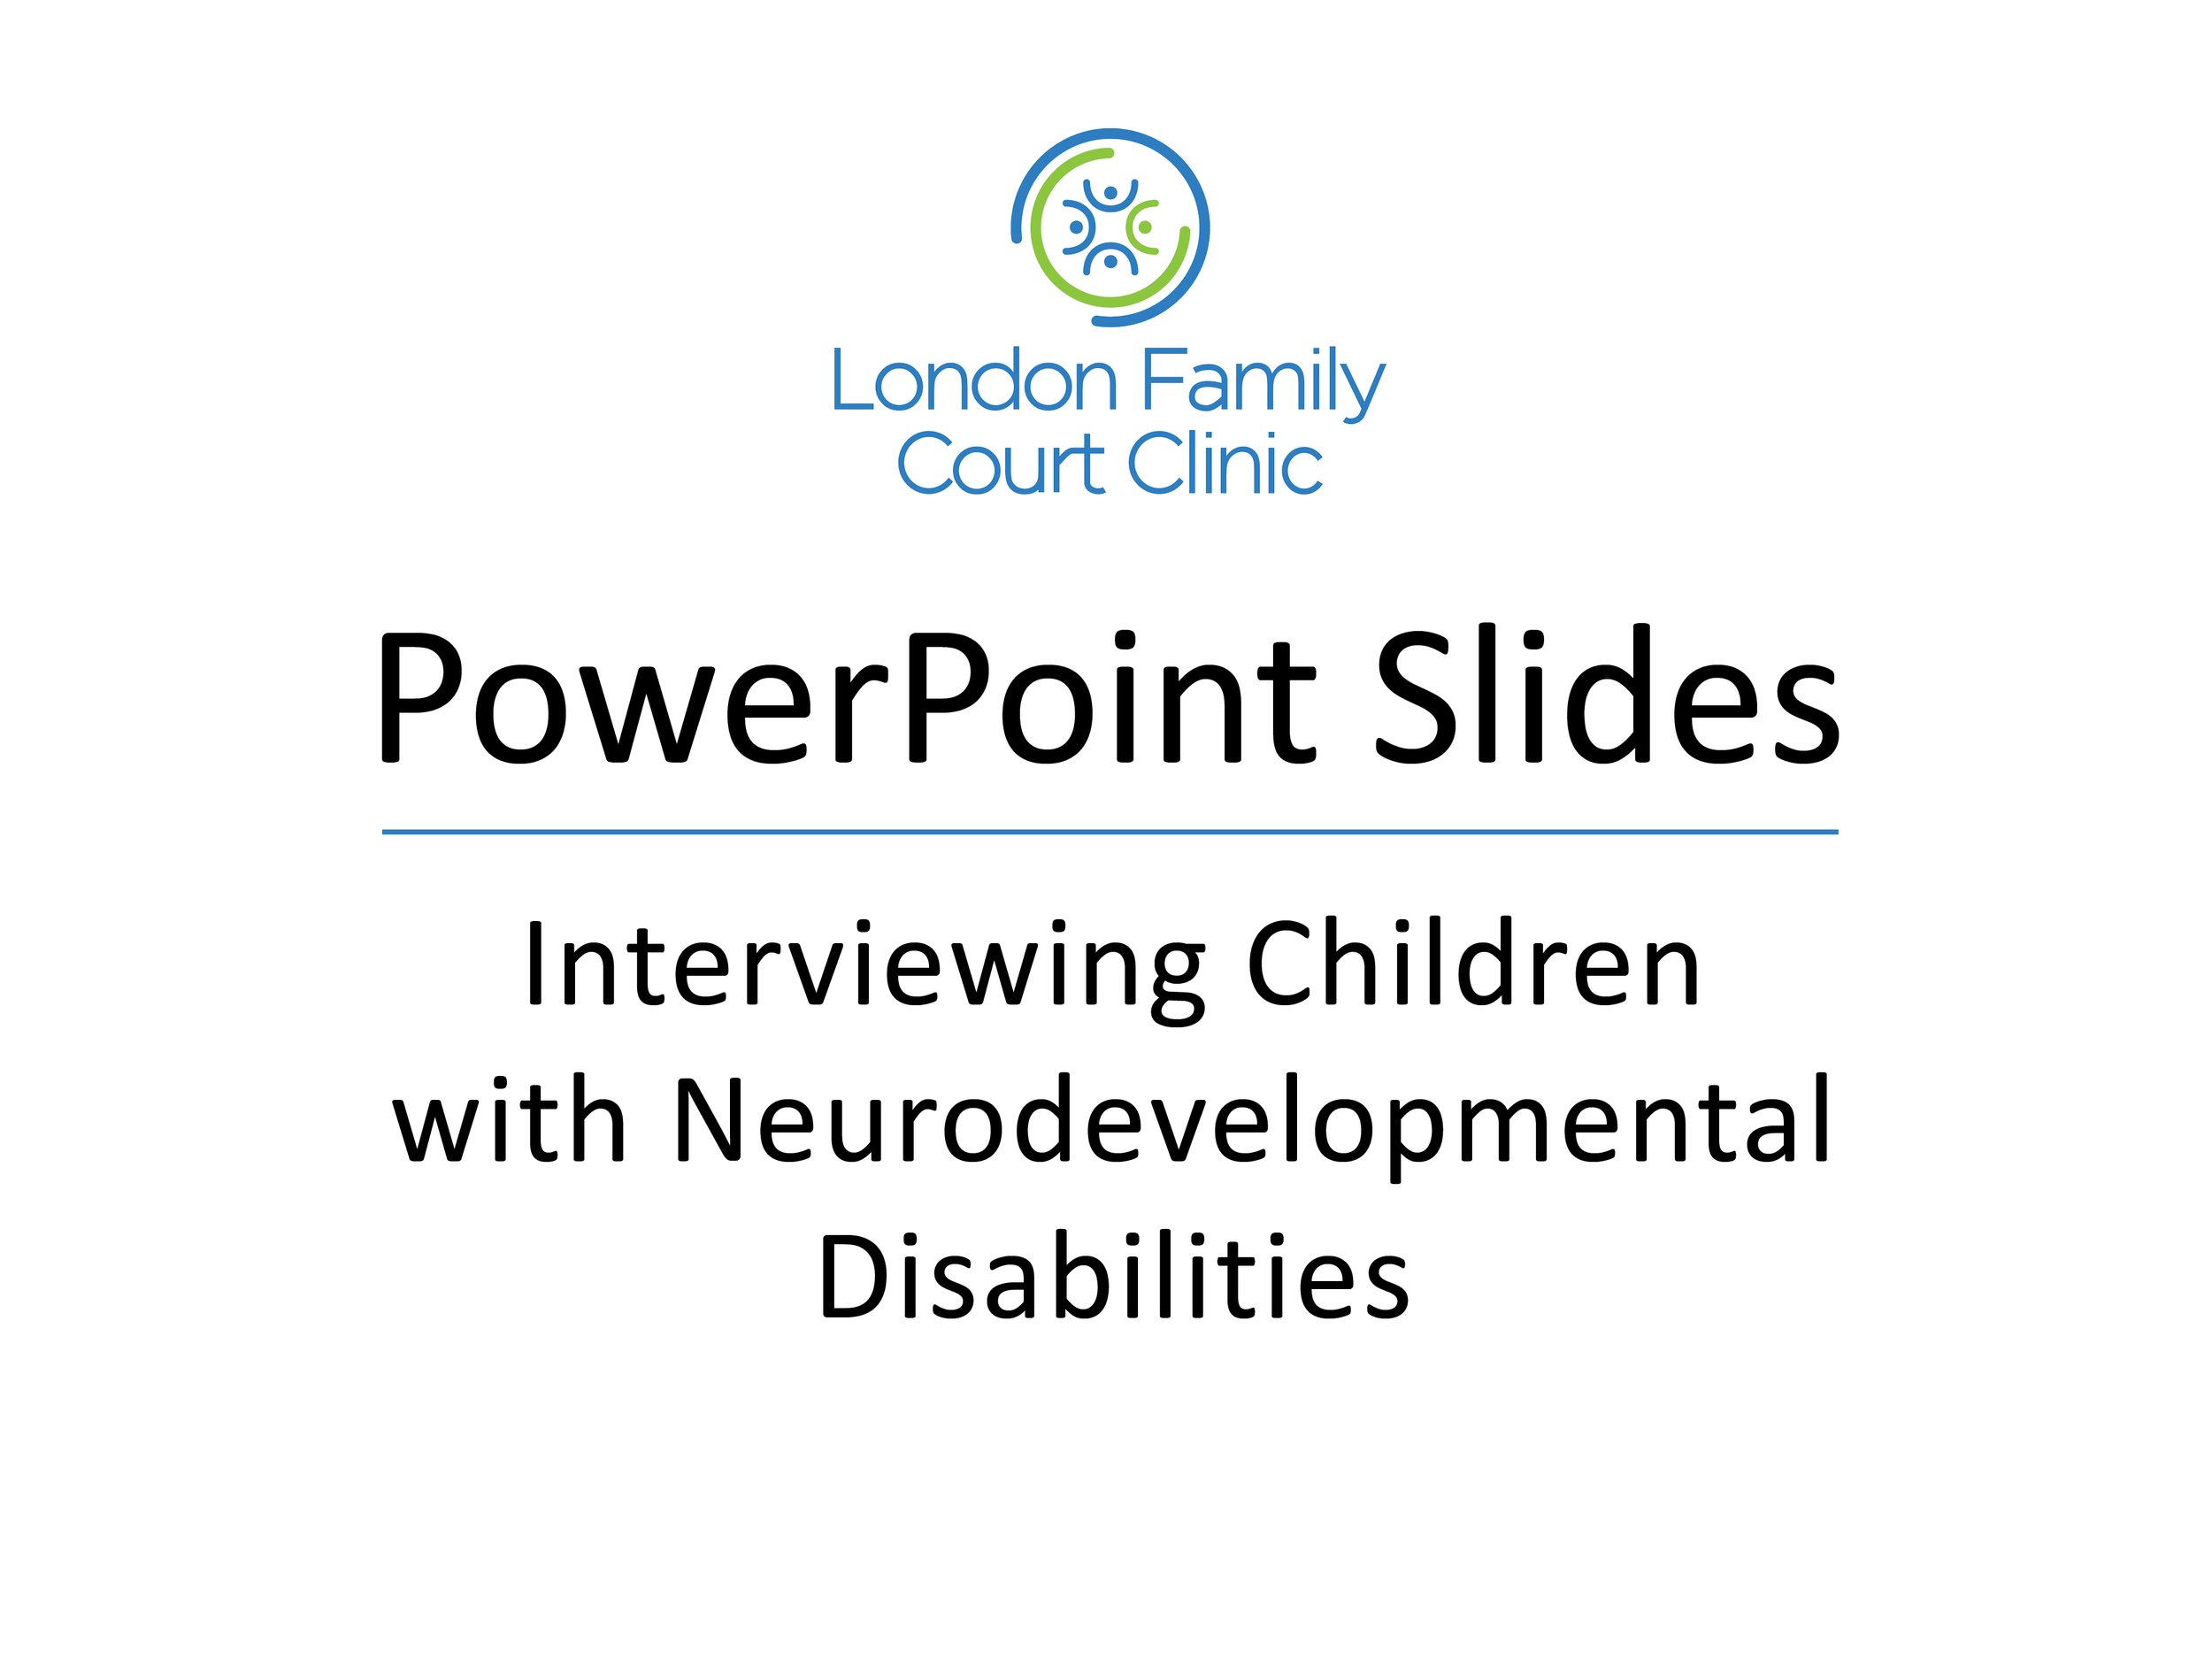 Interviewing Children with Neurodevelopmental Disabilities.png